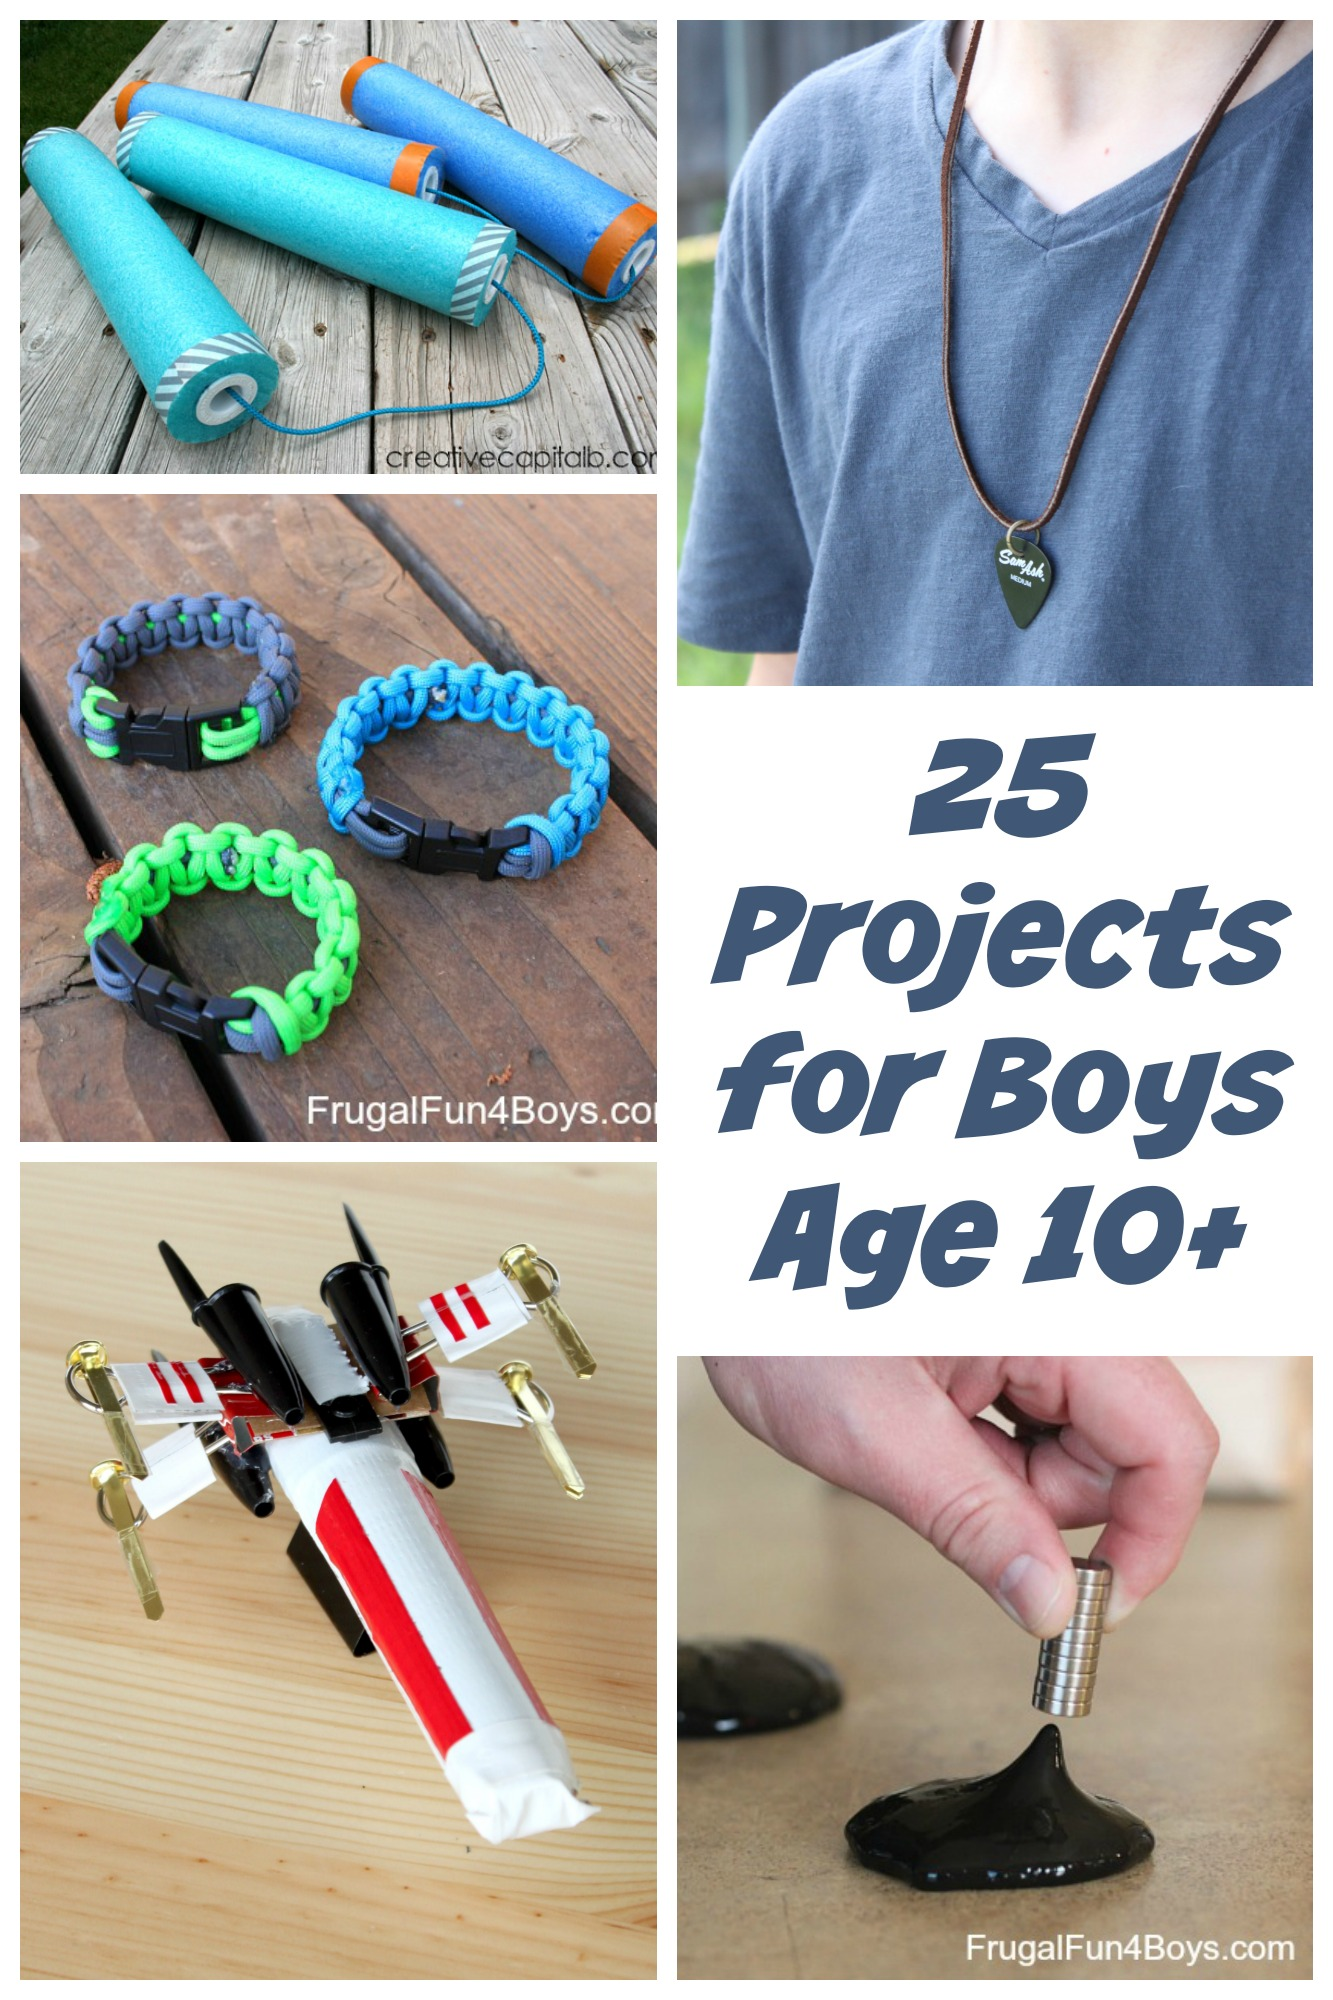 25 Projects For Boys Age 10